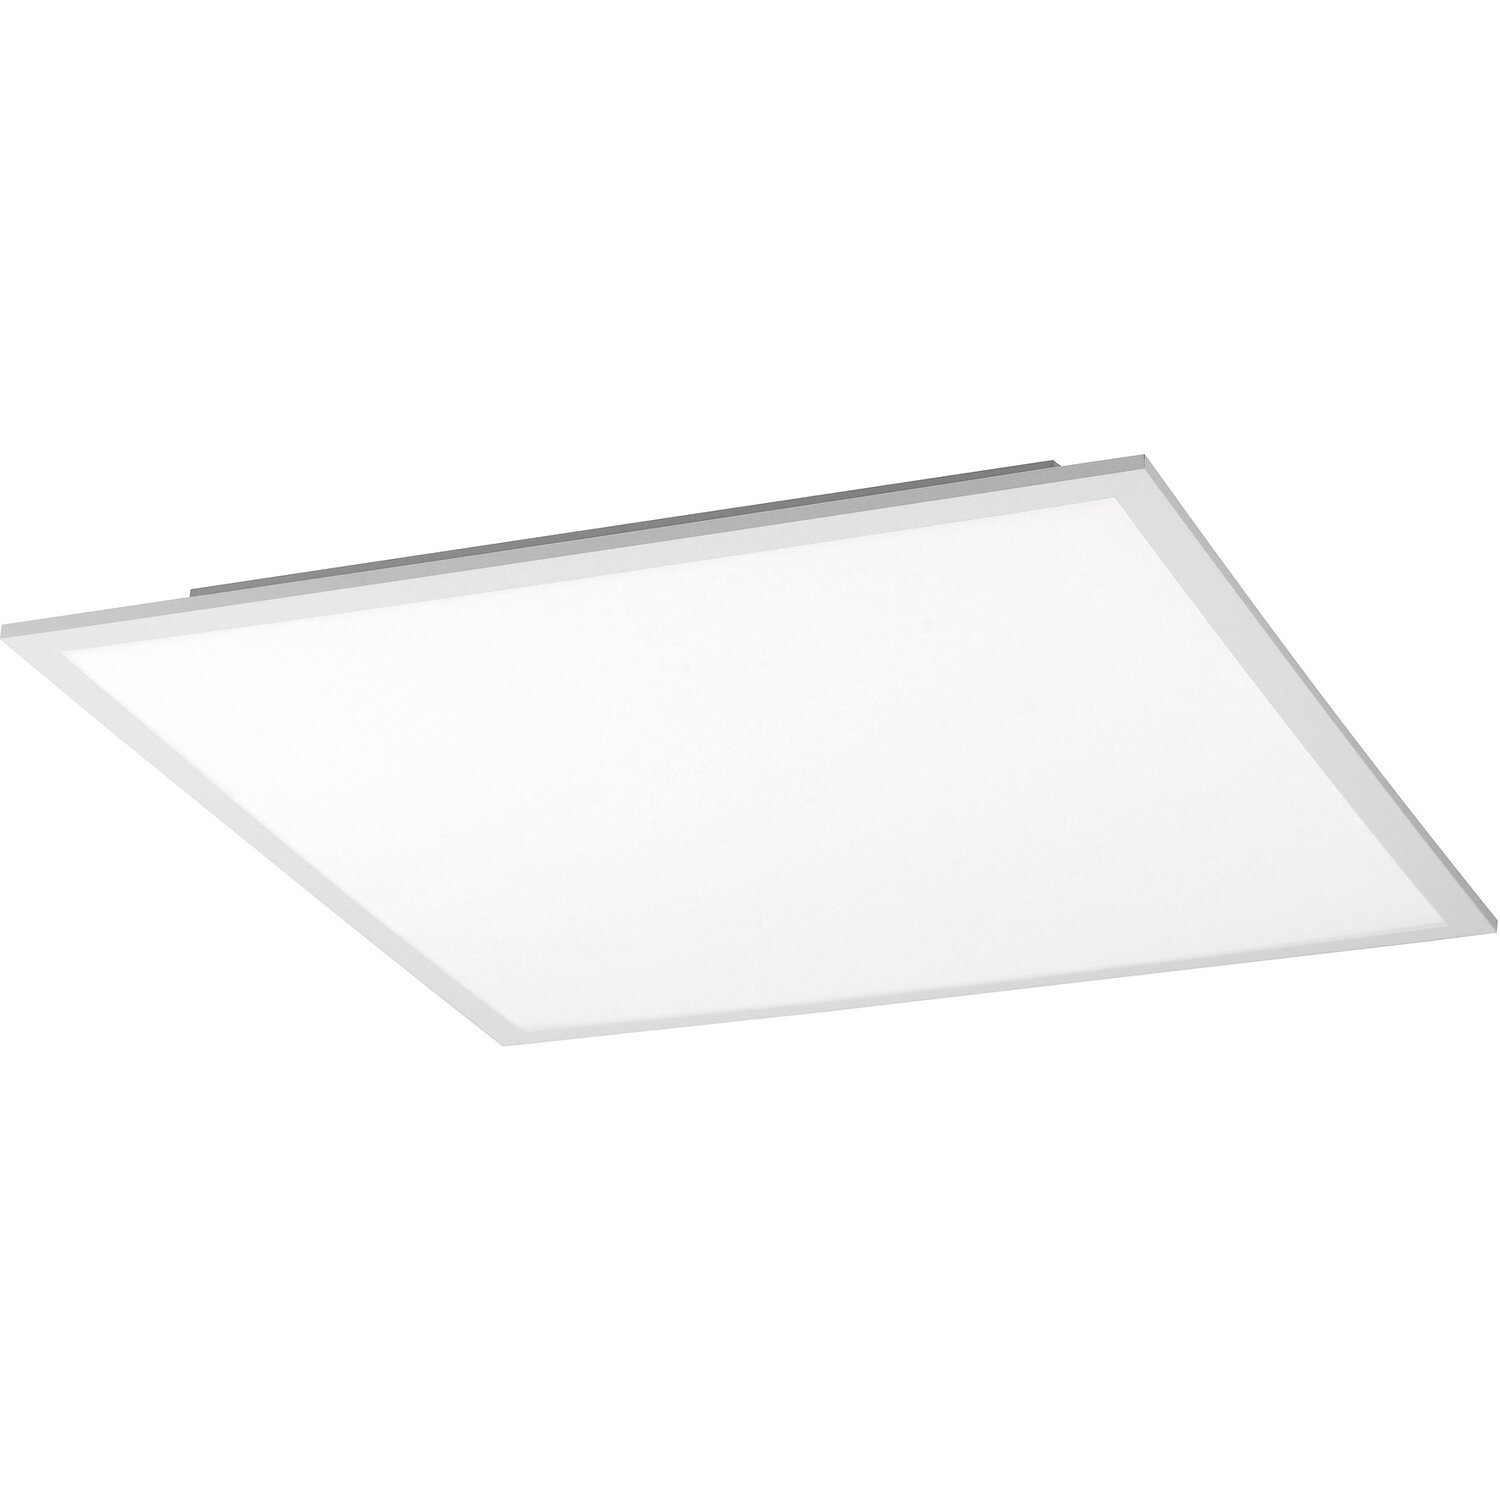 662735_1 Wunderbar Led Panel Rgb Dimmbar Dekorationen